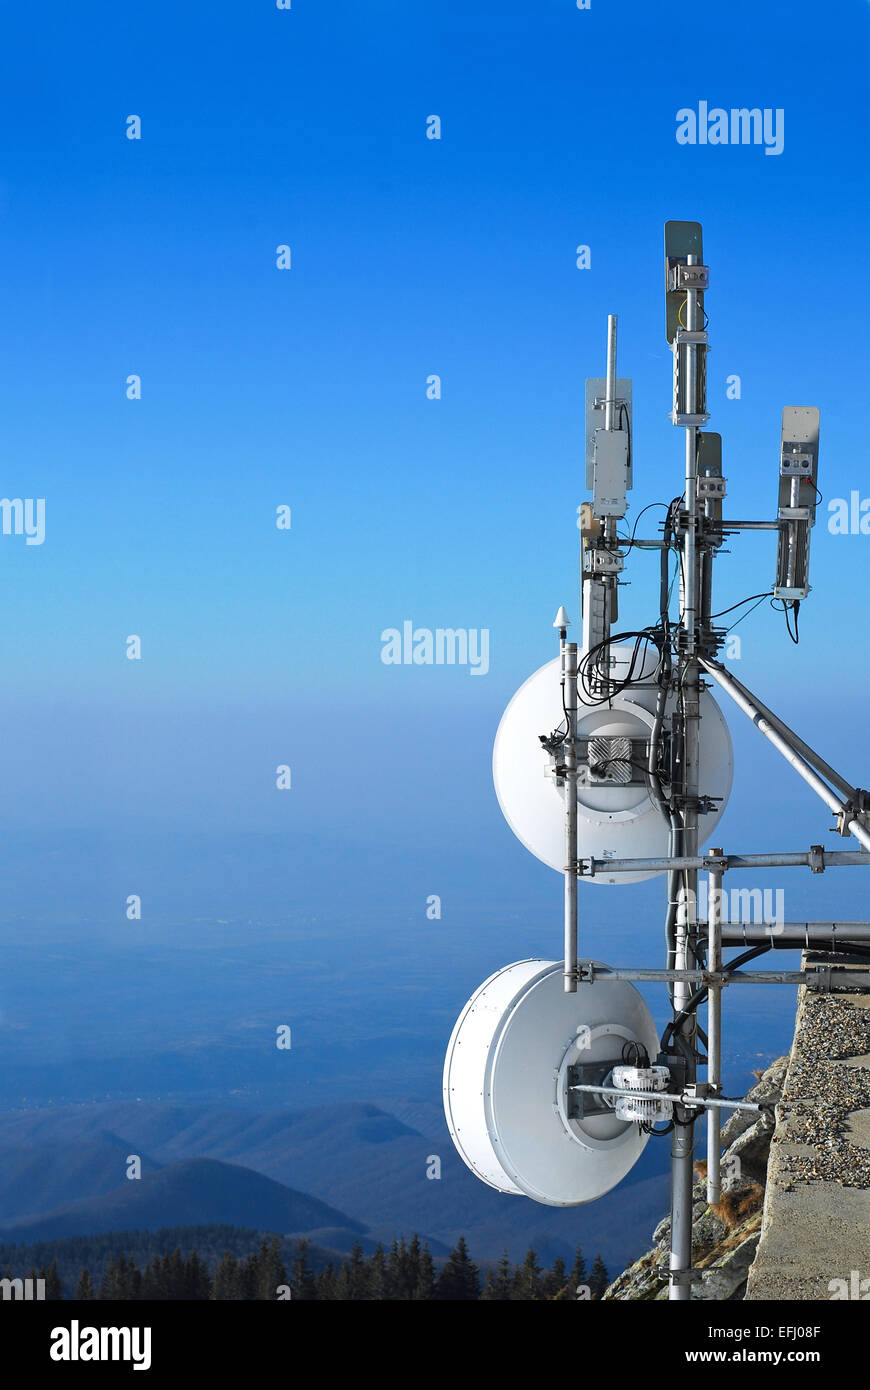 telecommunication antennas group on mountain top - Stock Image